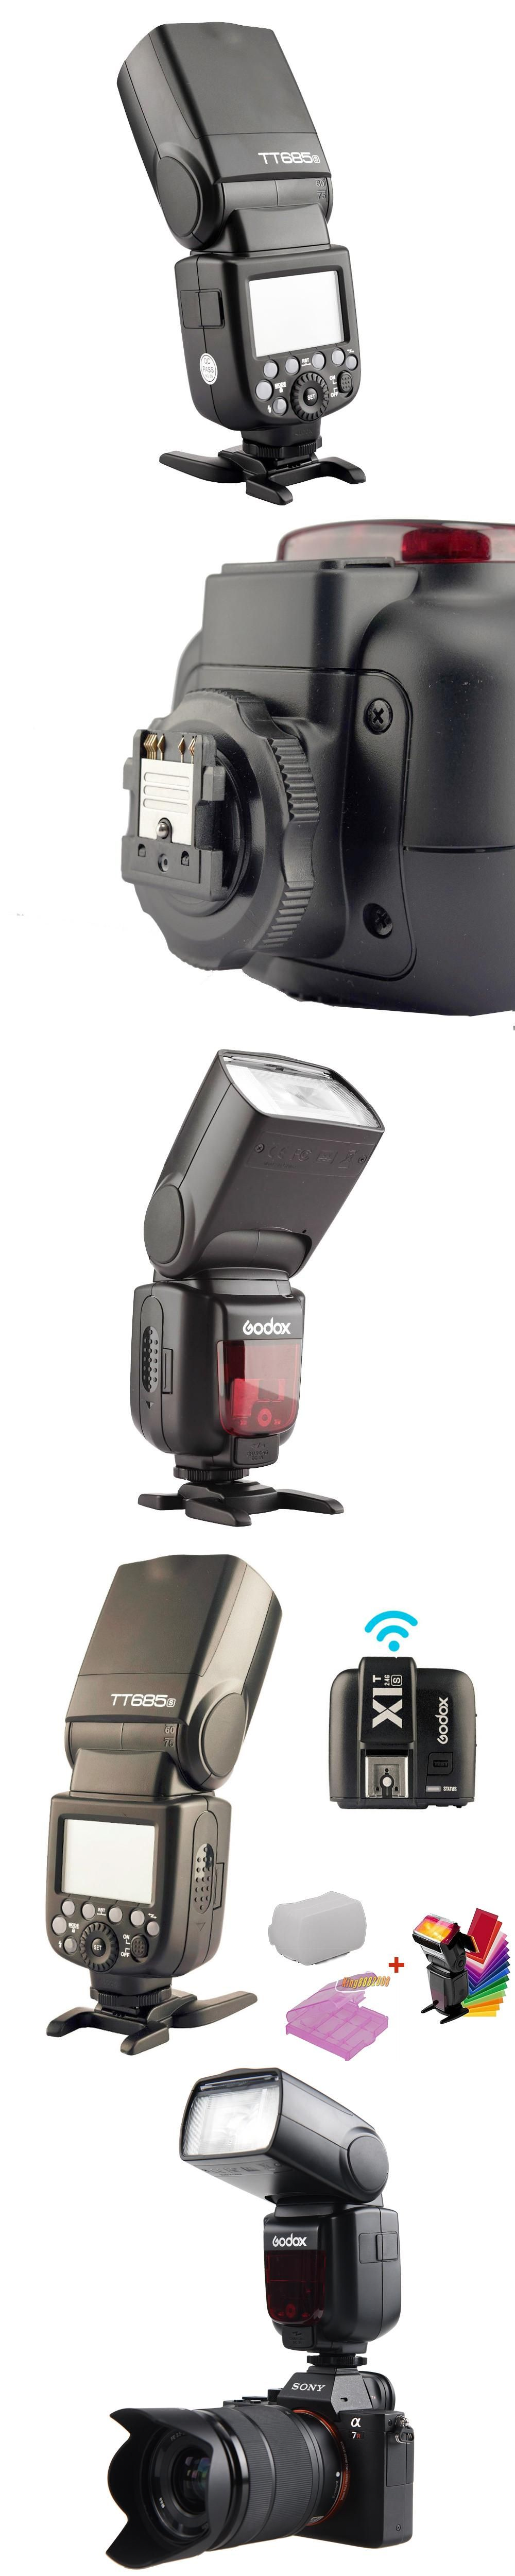 Godox Tt685s Gn60 Ttl Hss 1 8000s Flash Light Speedlite X1t S Untuk Sony Trigger